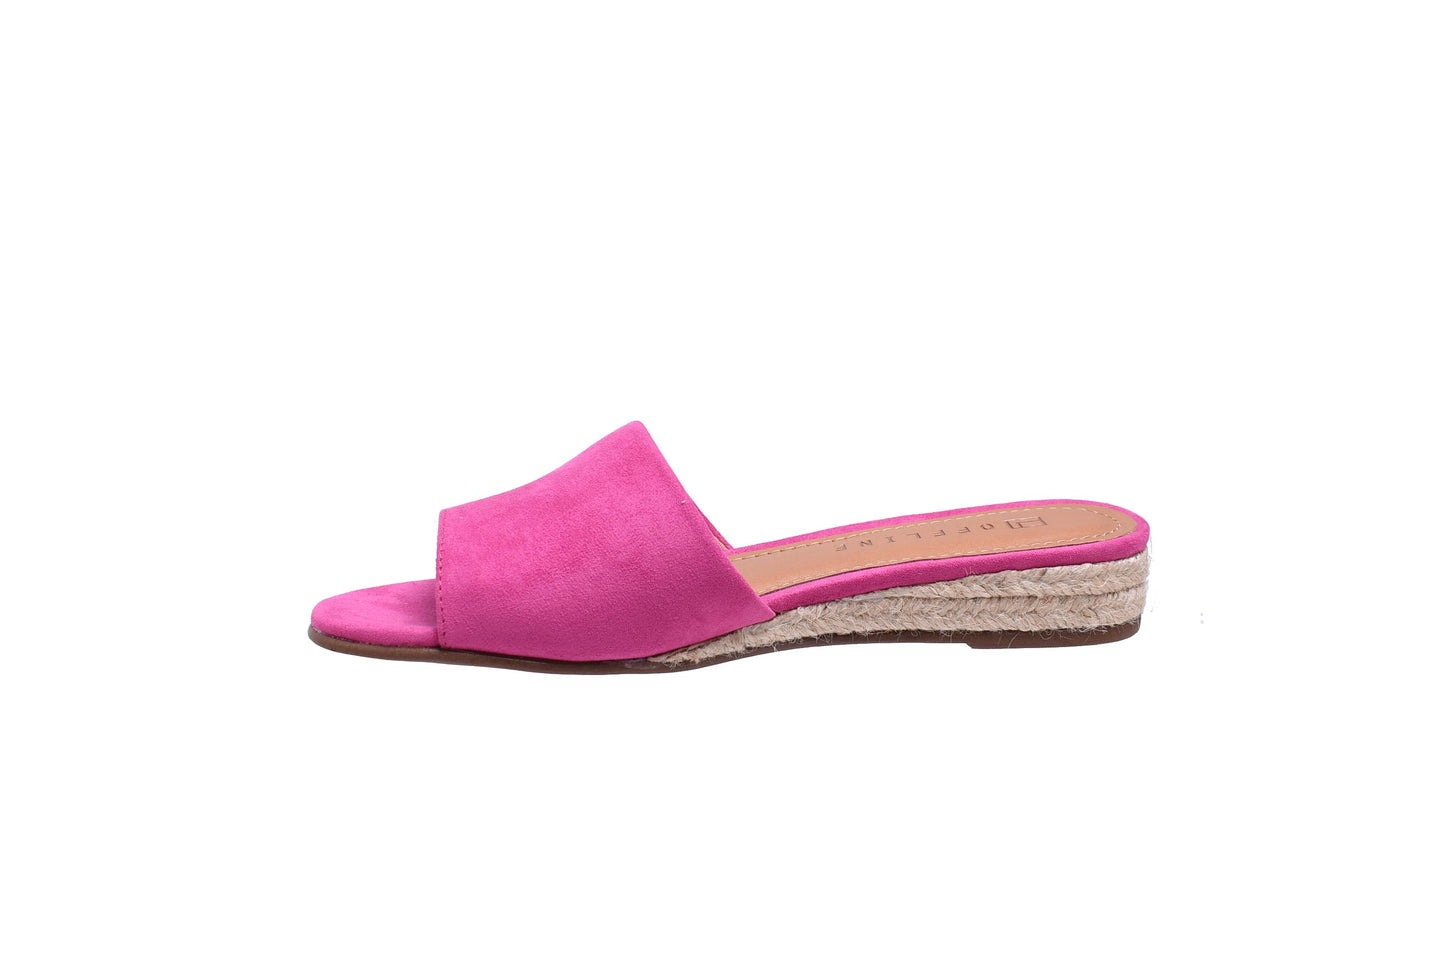 Hot Pink, Suede, Slip On Wedge